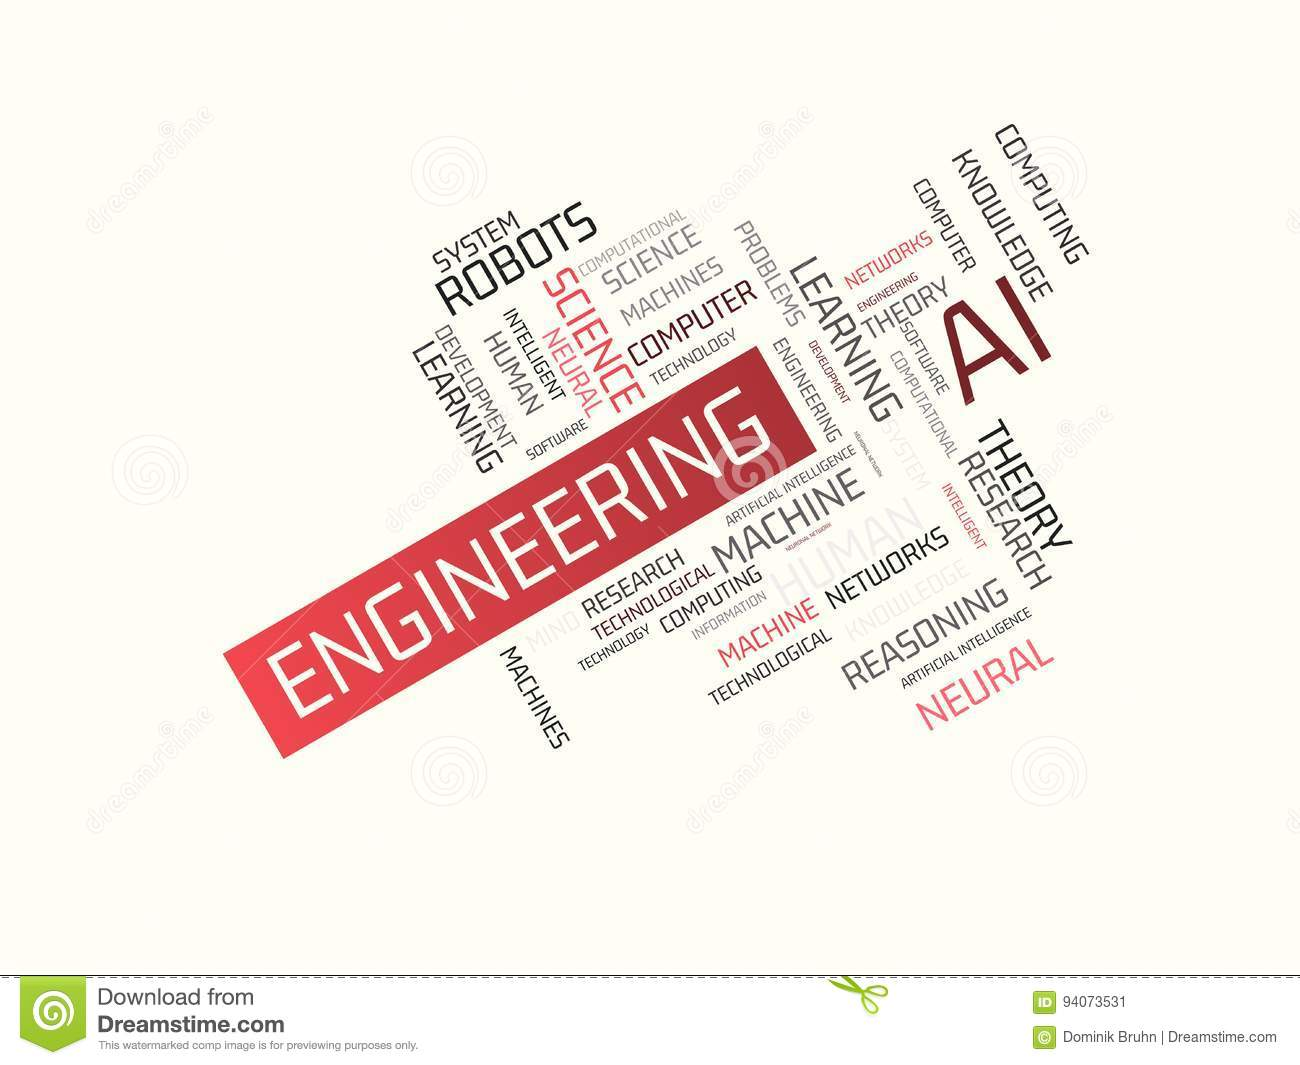 Engineering Image With Words Associated With The Topic Artificial